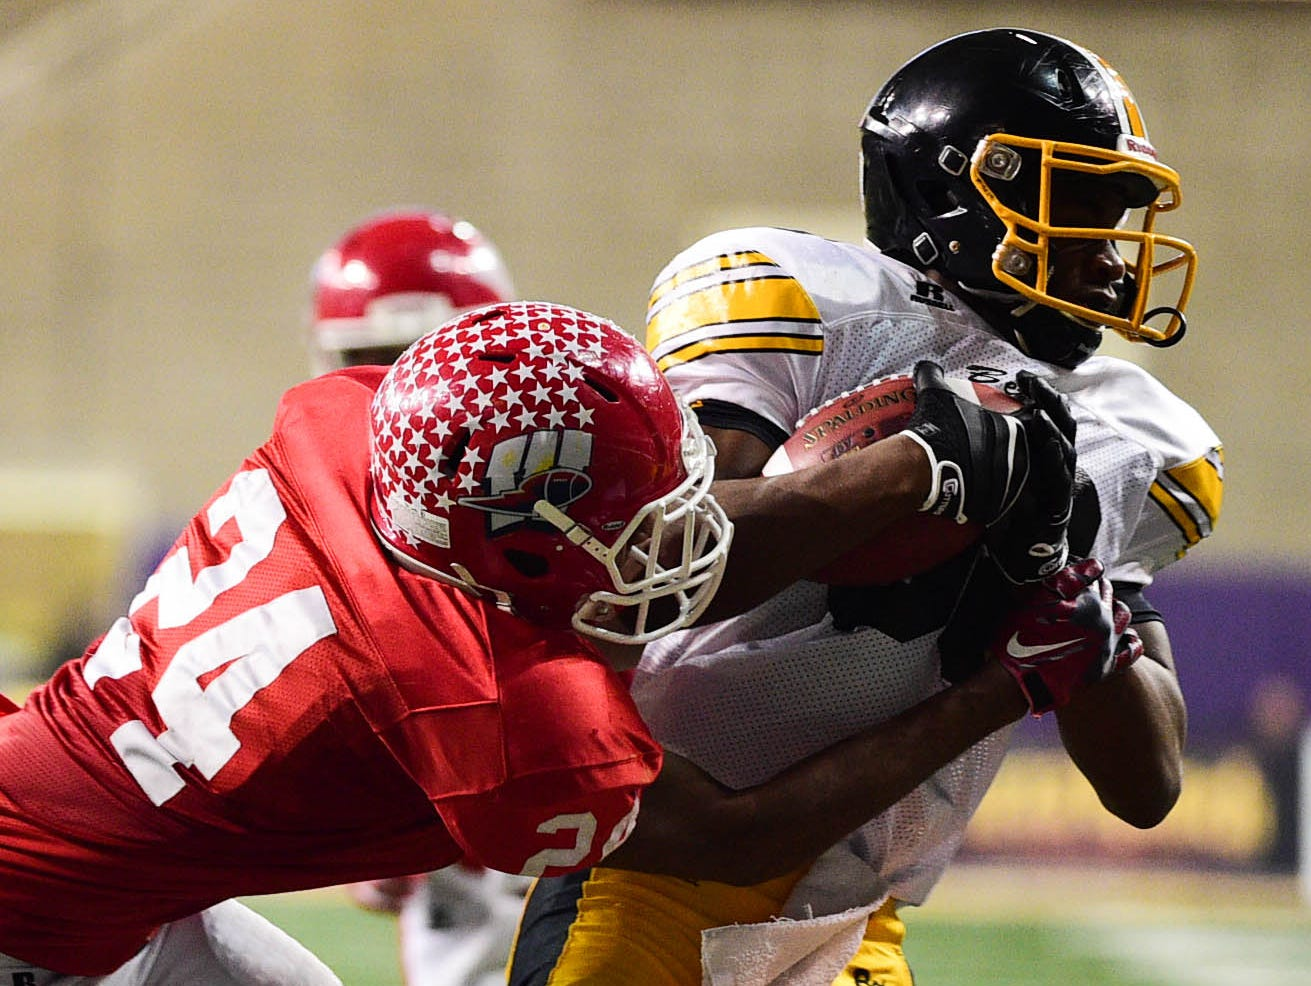 Bettendorf's Runningback Justin O'Conner (3) tries to get away from Cedar Rapids Washington's linebacker O'rien Vance (24) at the IHSAA Class 4A Football Semifinals held at the UNI-Dome in Cedar Falls, Iowa on Friday, Nov. 14, 2014.